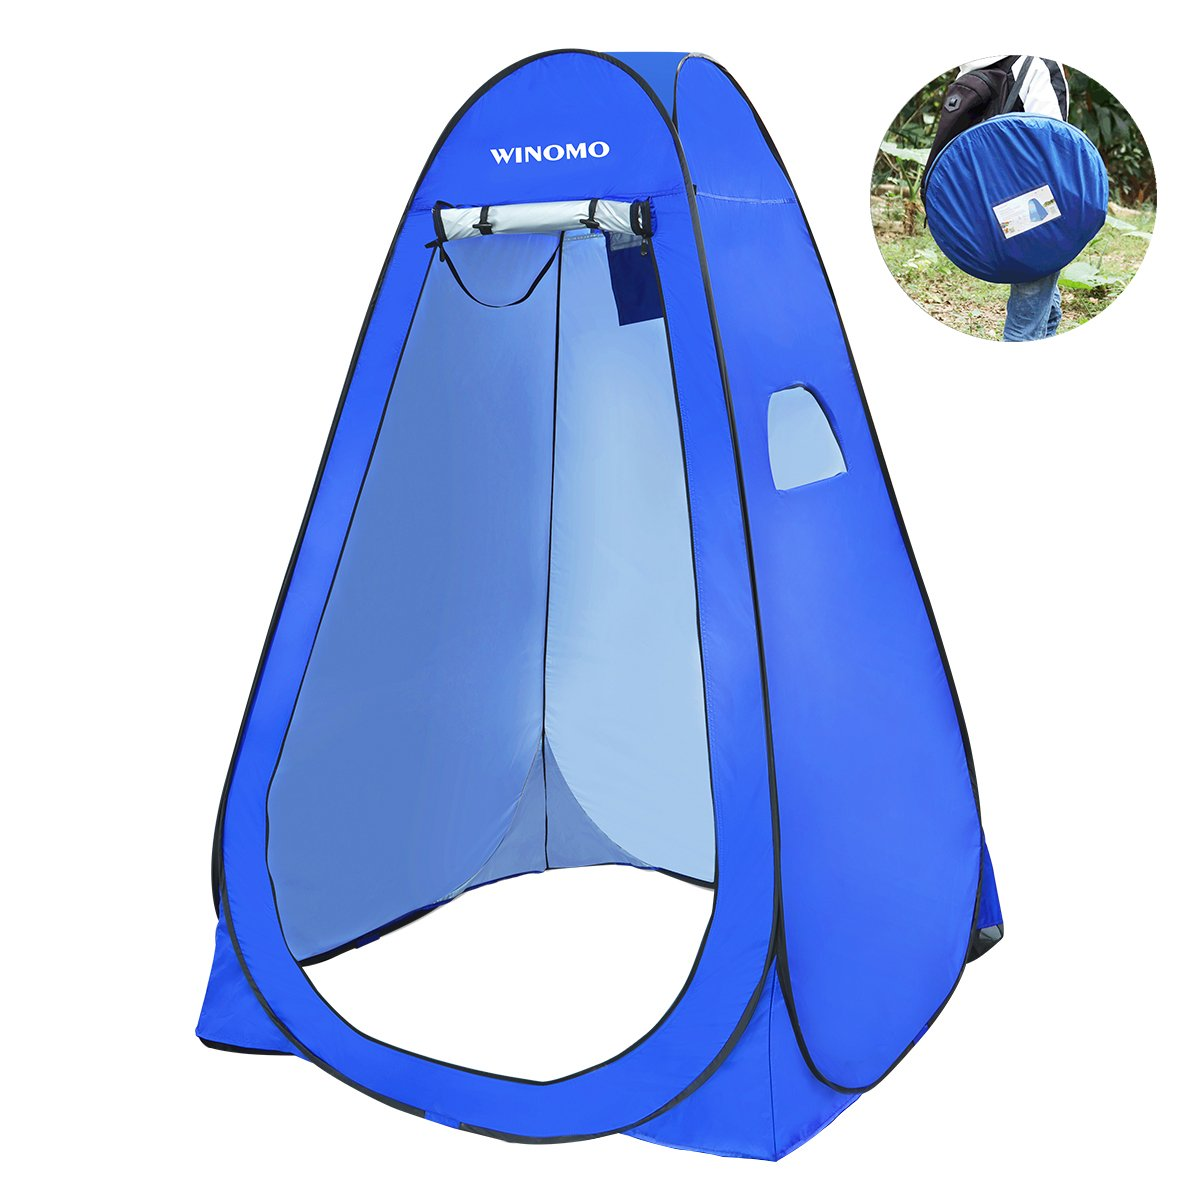 WINOMO Pop Up Shower Tent Portable Changing Room Privacy Shelter with Carry Bag for Camping Hiking Beach Toilet by WINOMO